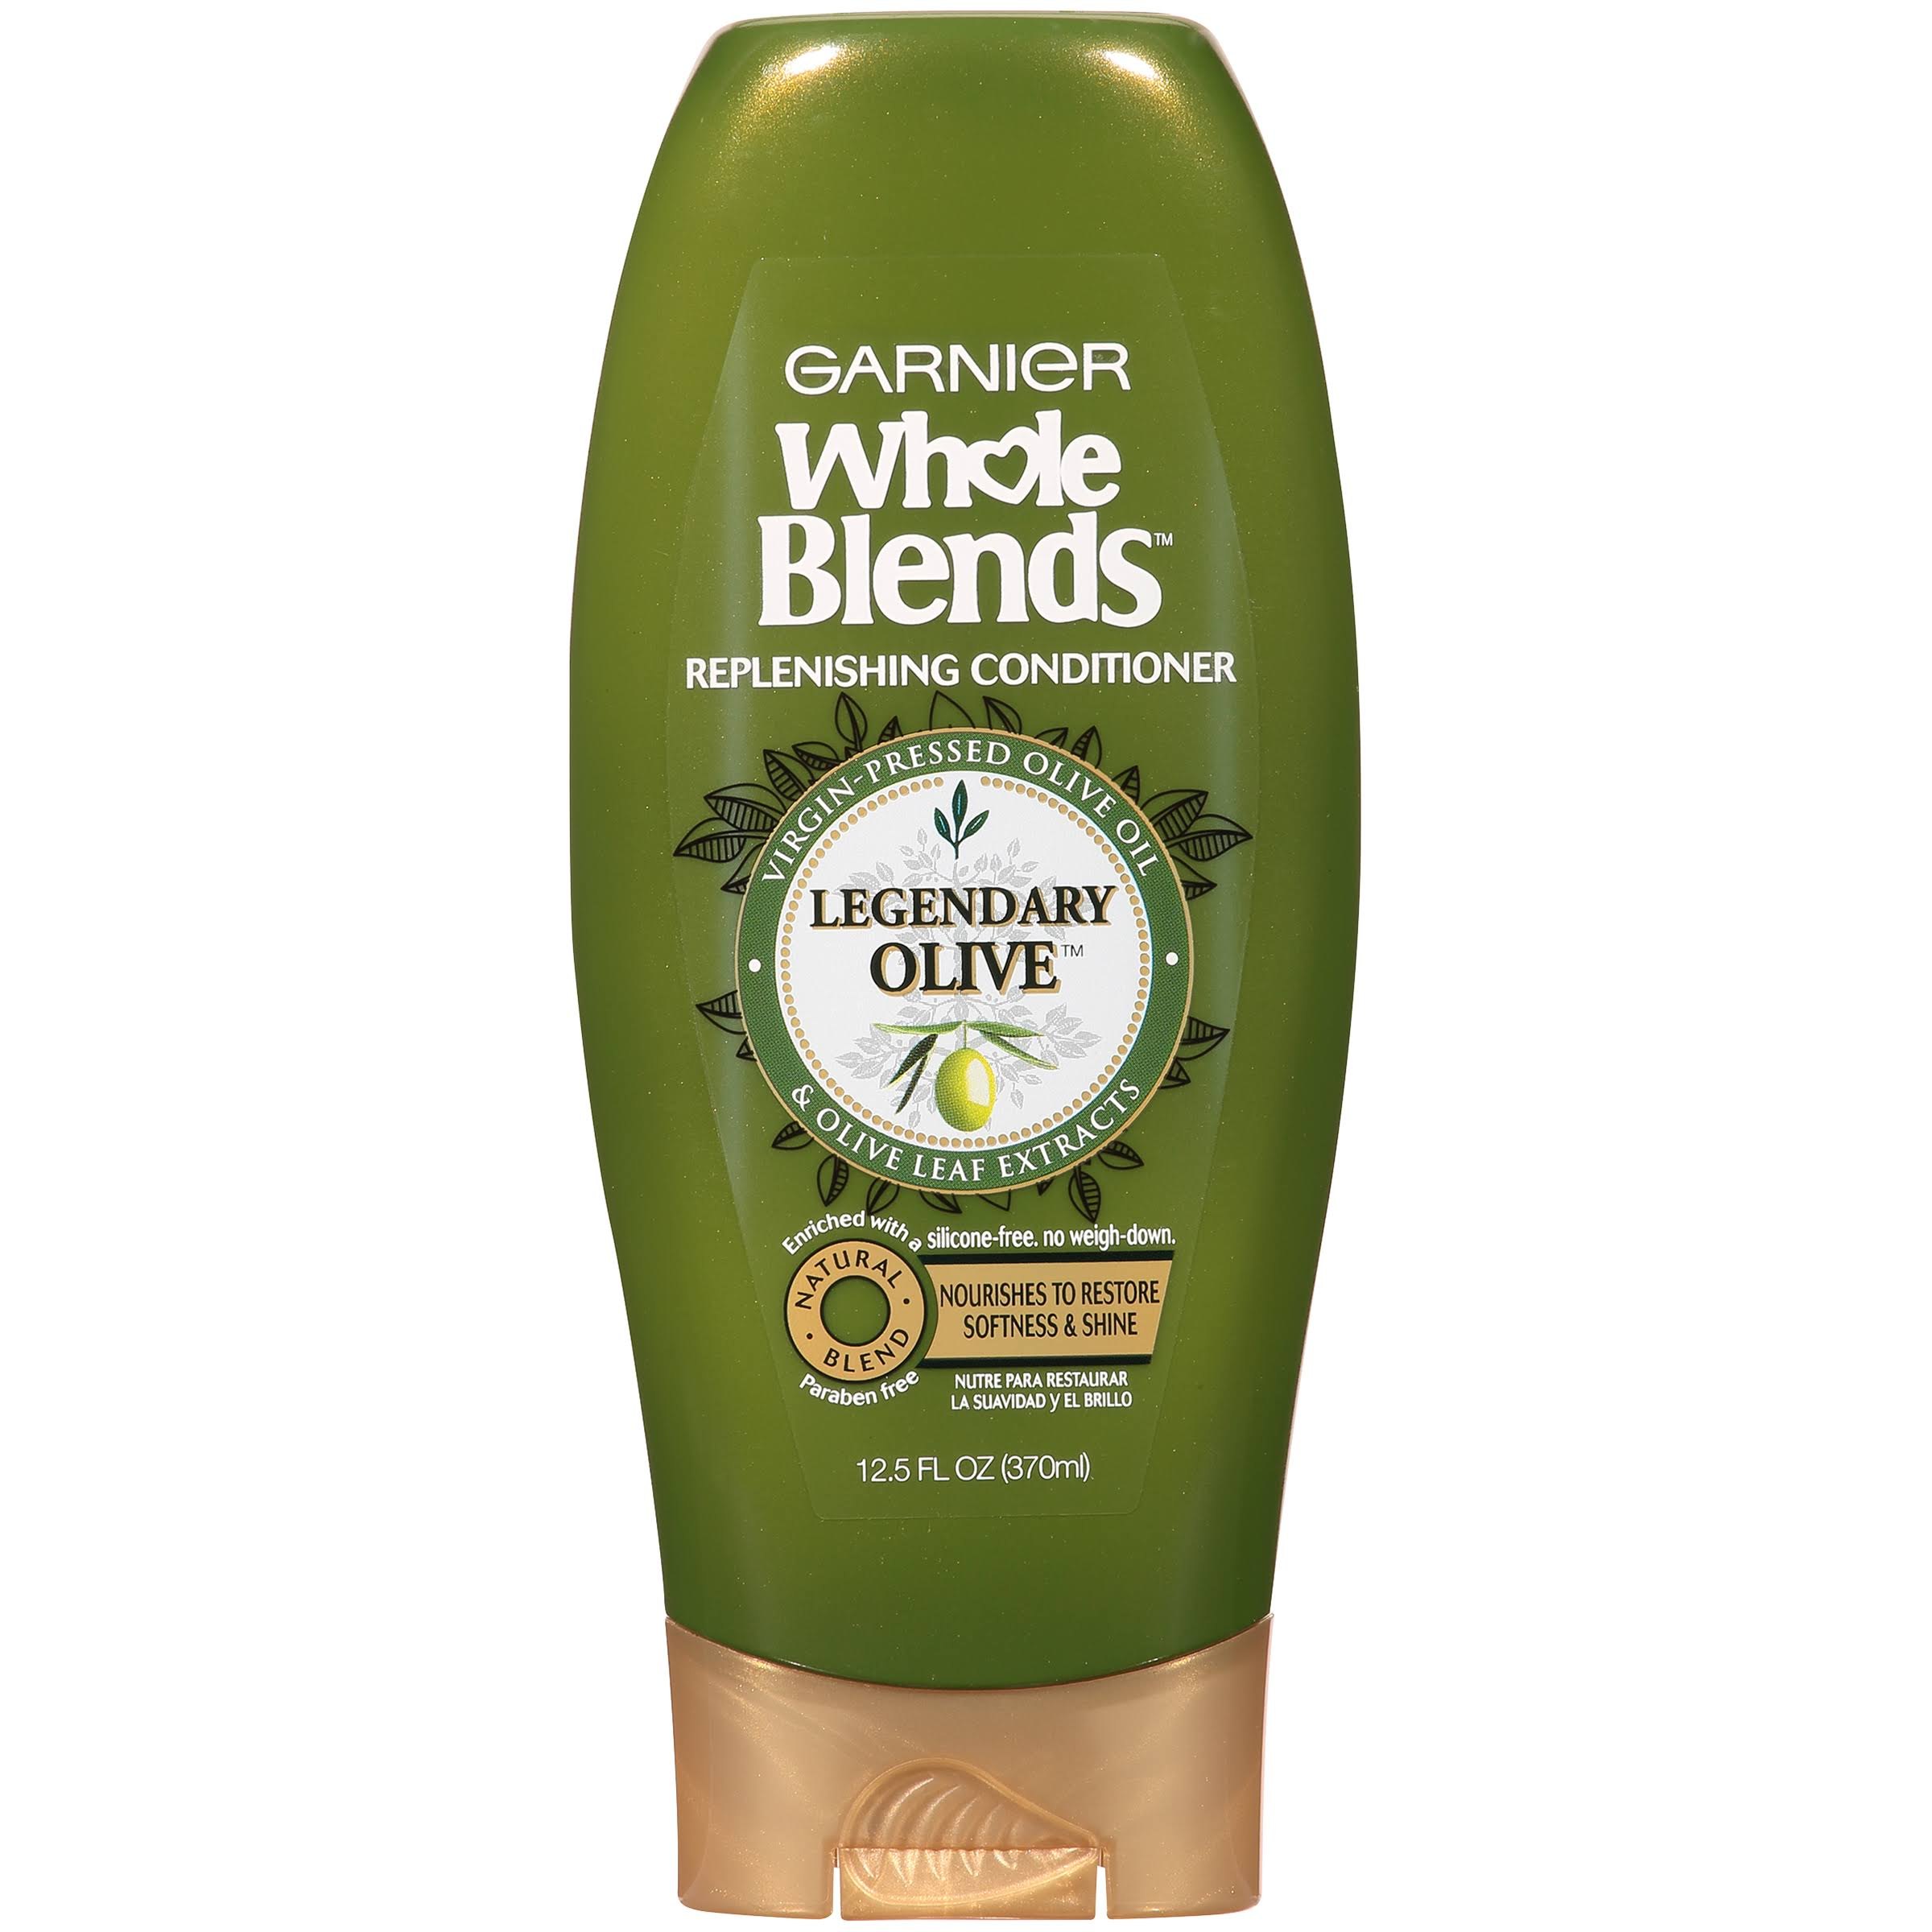 Garnier Whole Blends Replenishing Conditioner - 12.5oz, Legendary Olive